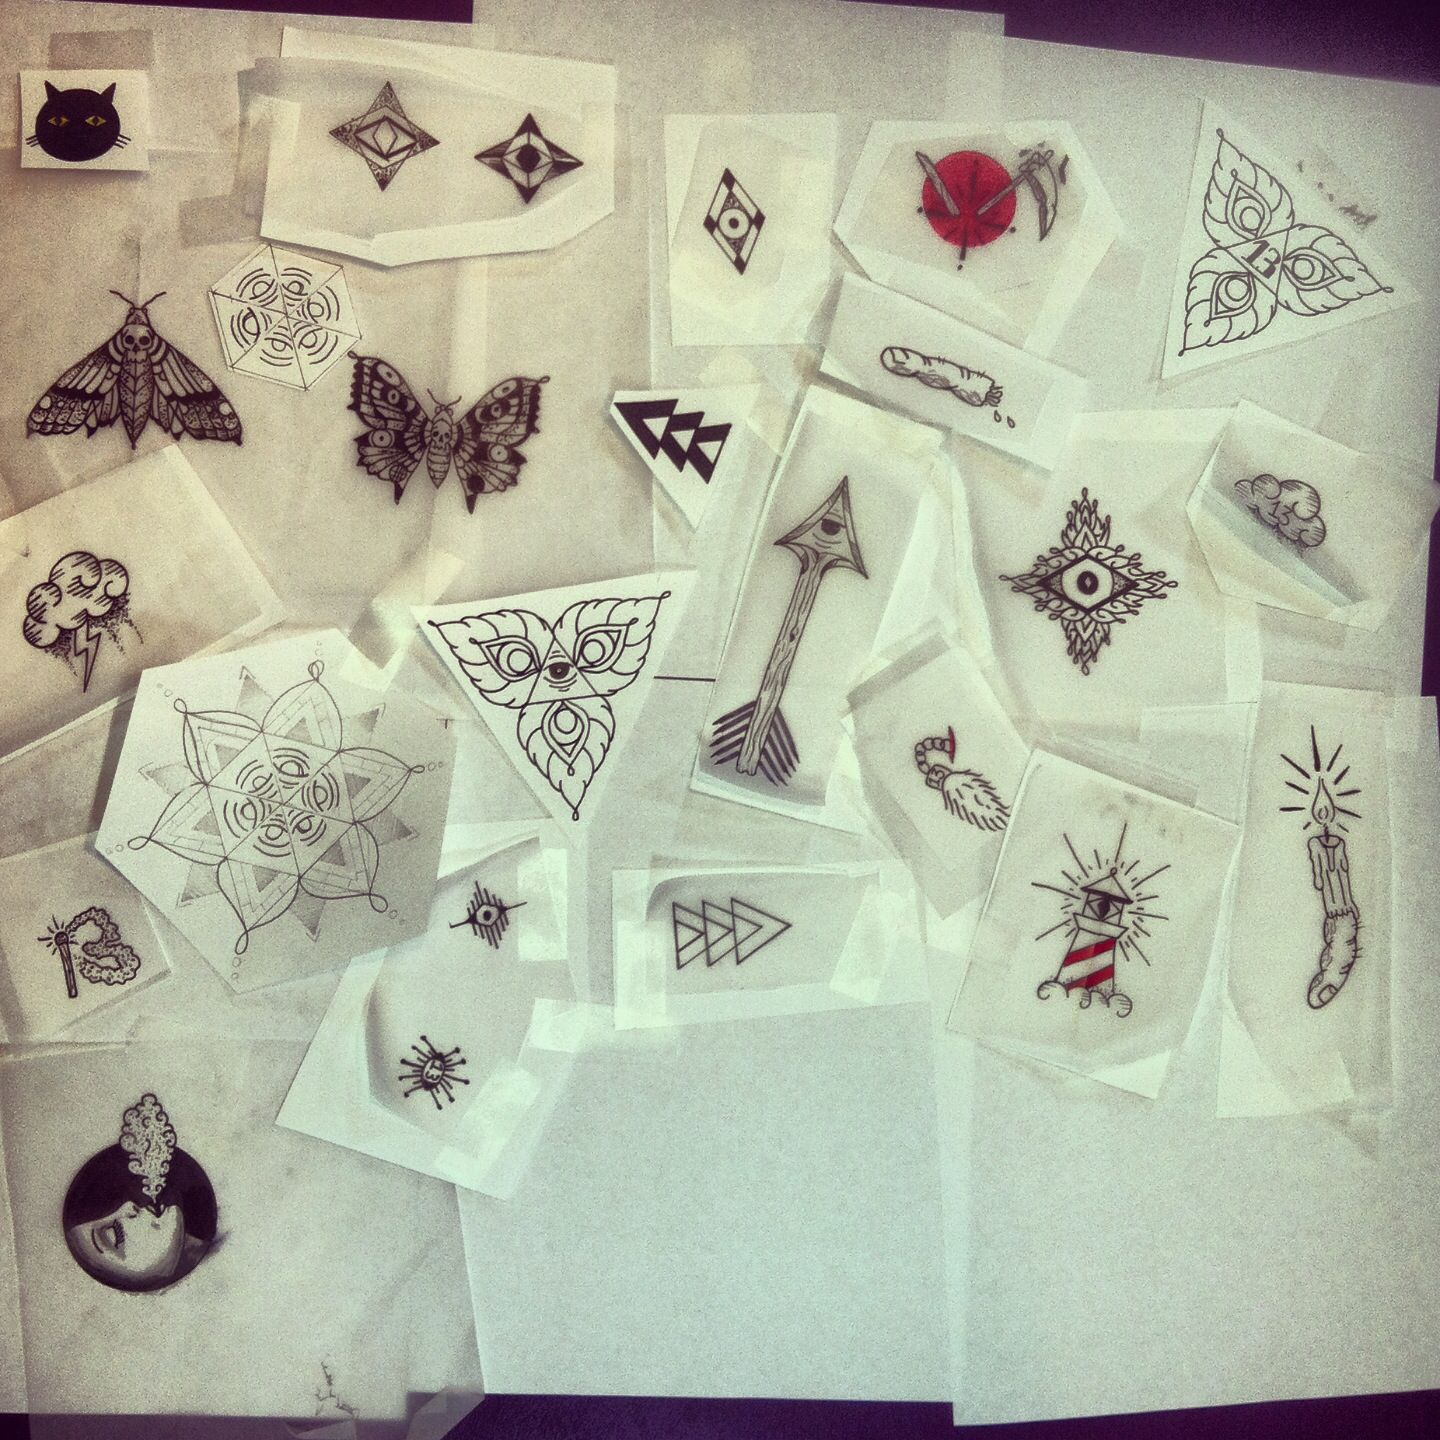 Friday 13th Tattoo Ideas: Friday The 13th Tattoo Designs By Oliver Kenton